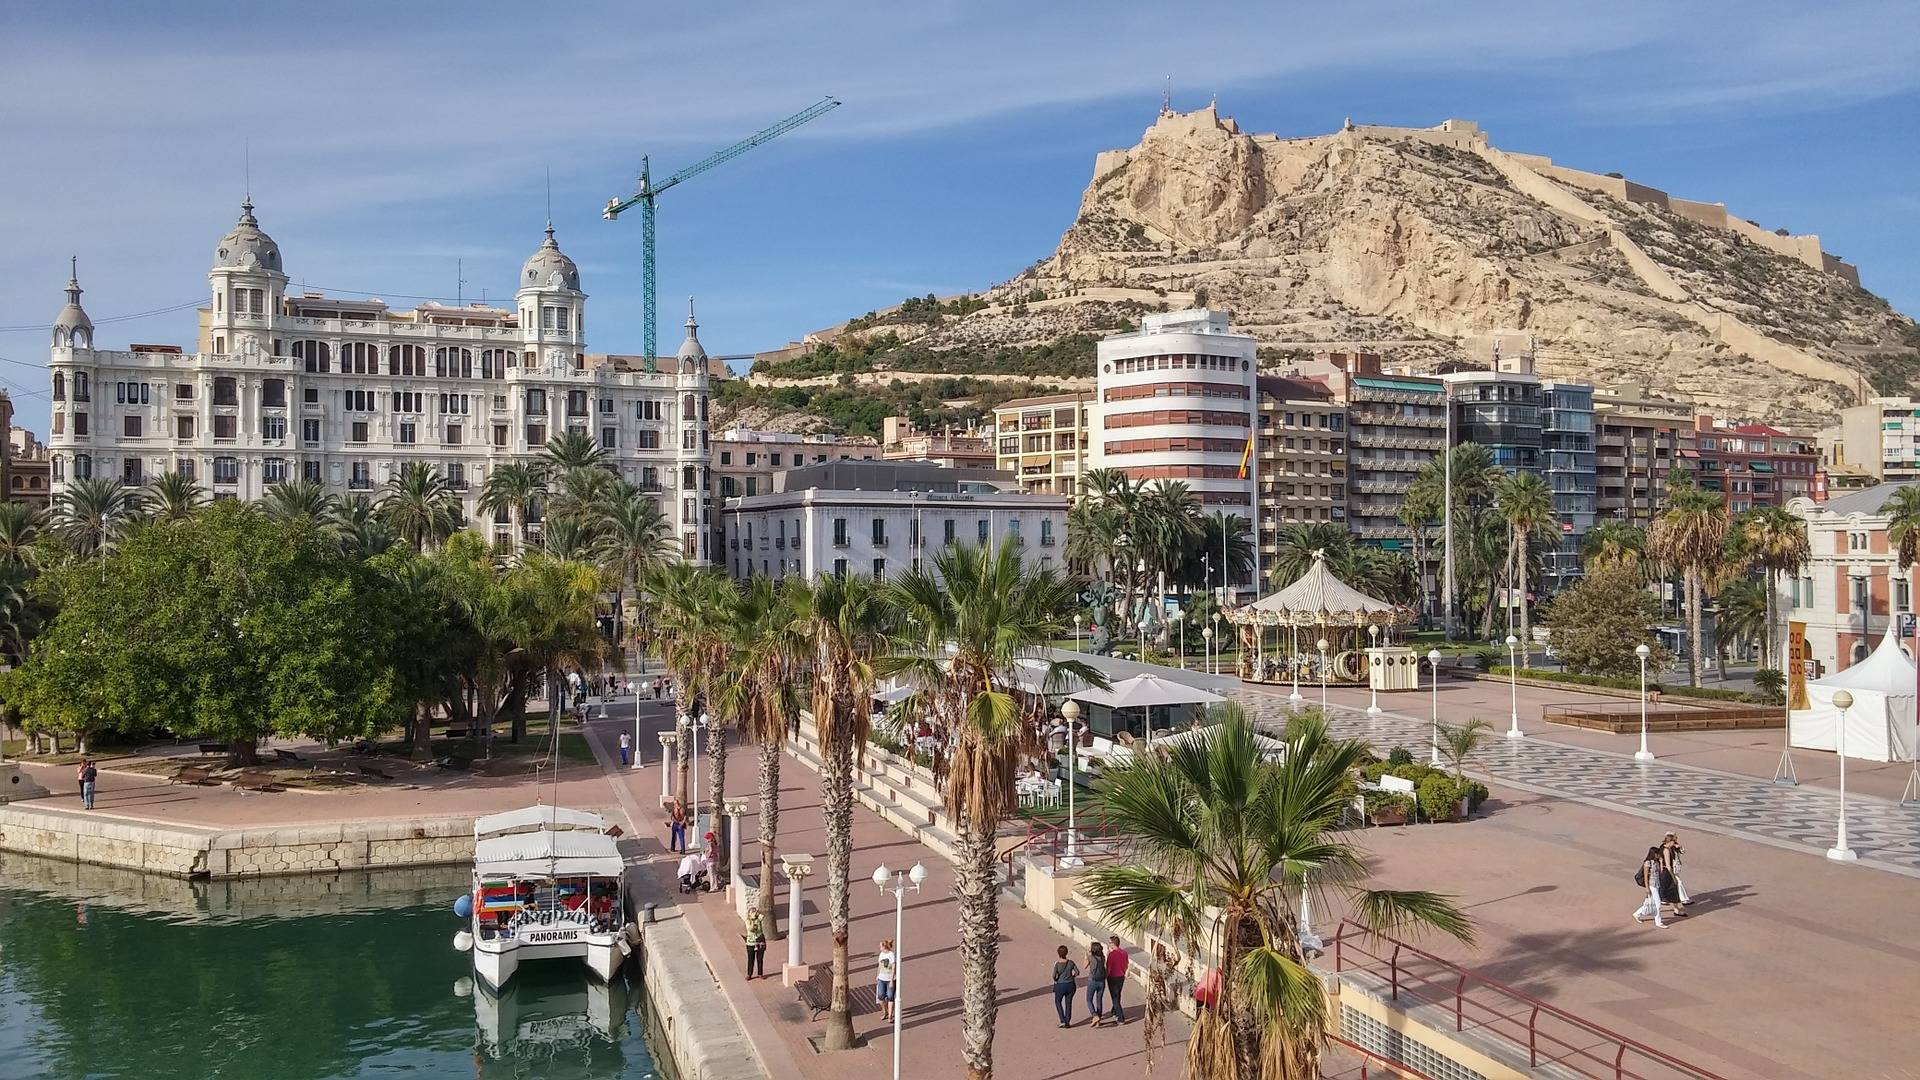 Alicante in autum